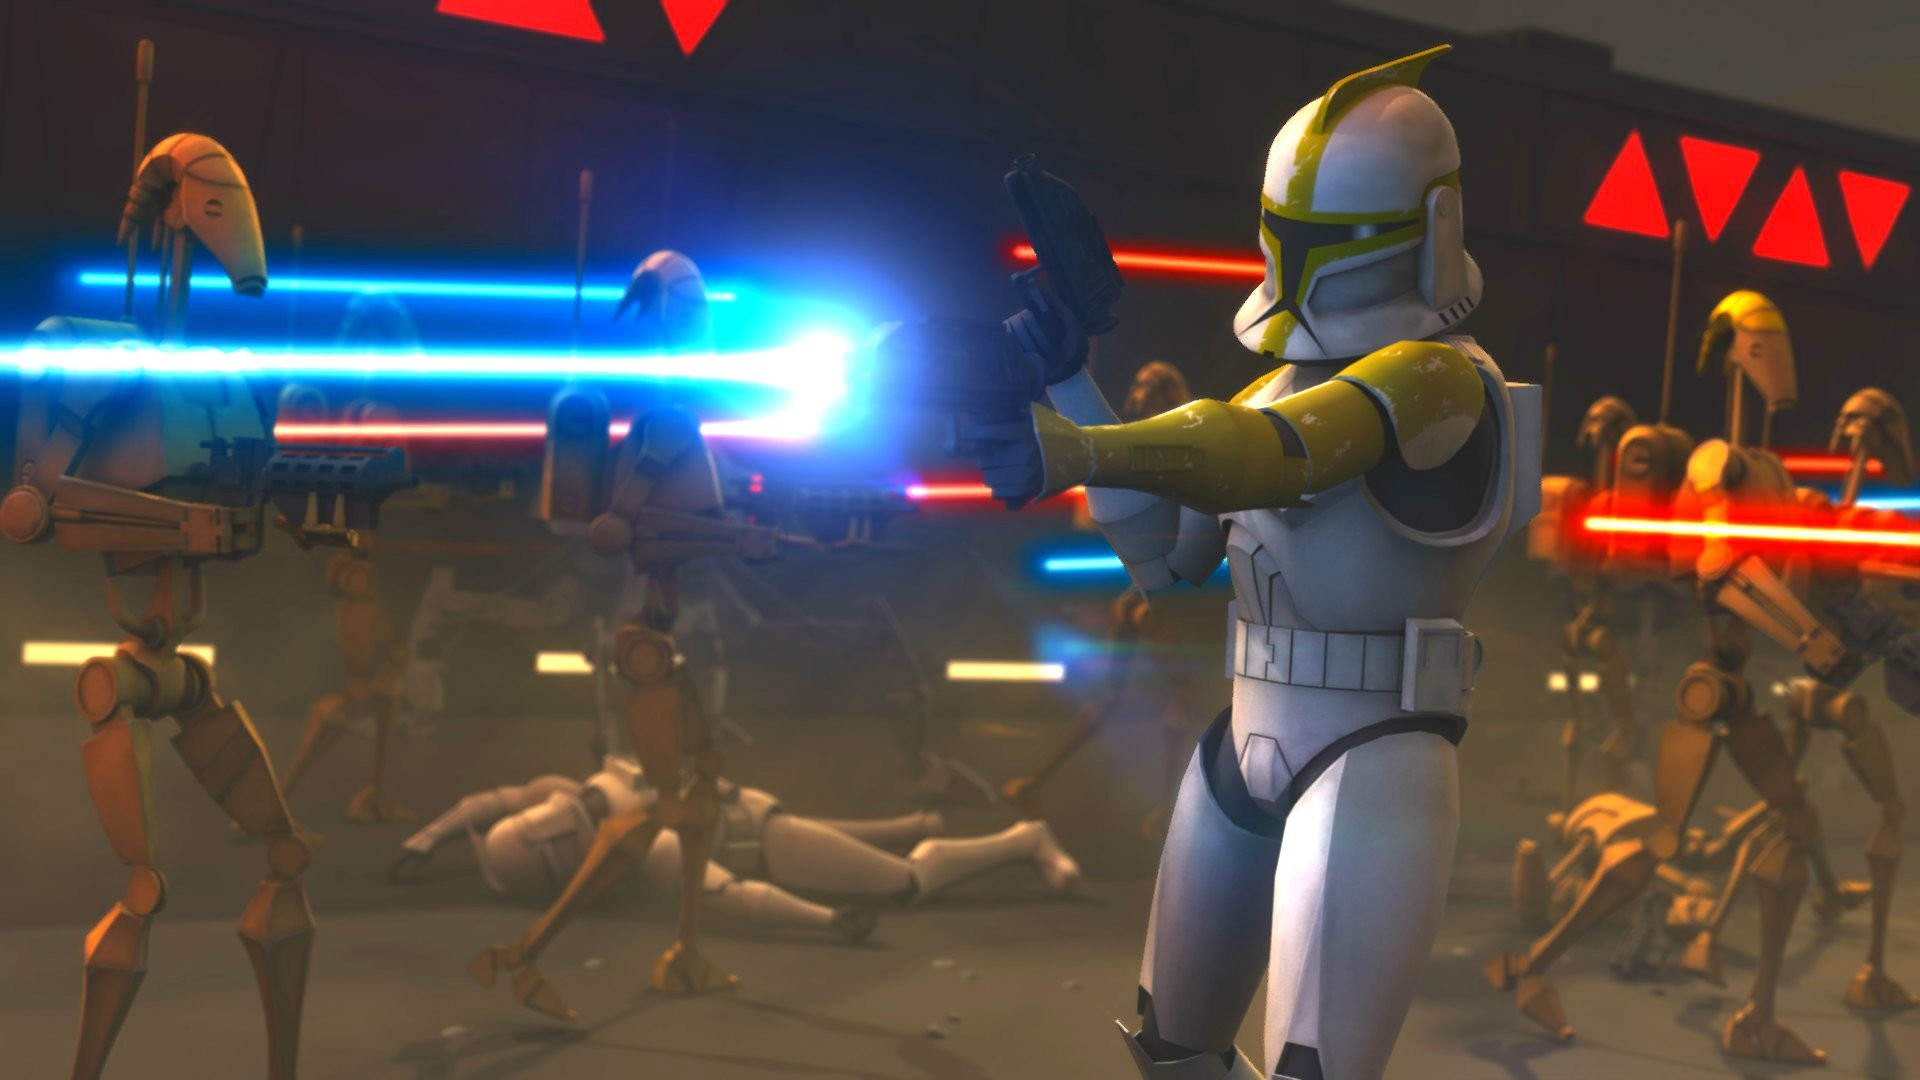 Star Wars Clone Wars Wallpapers 65 Background Pictures